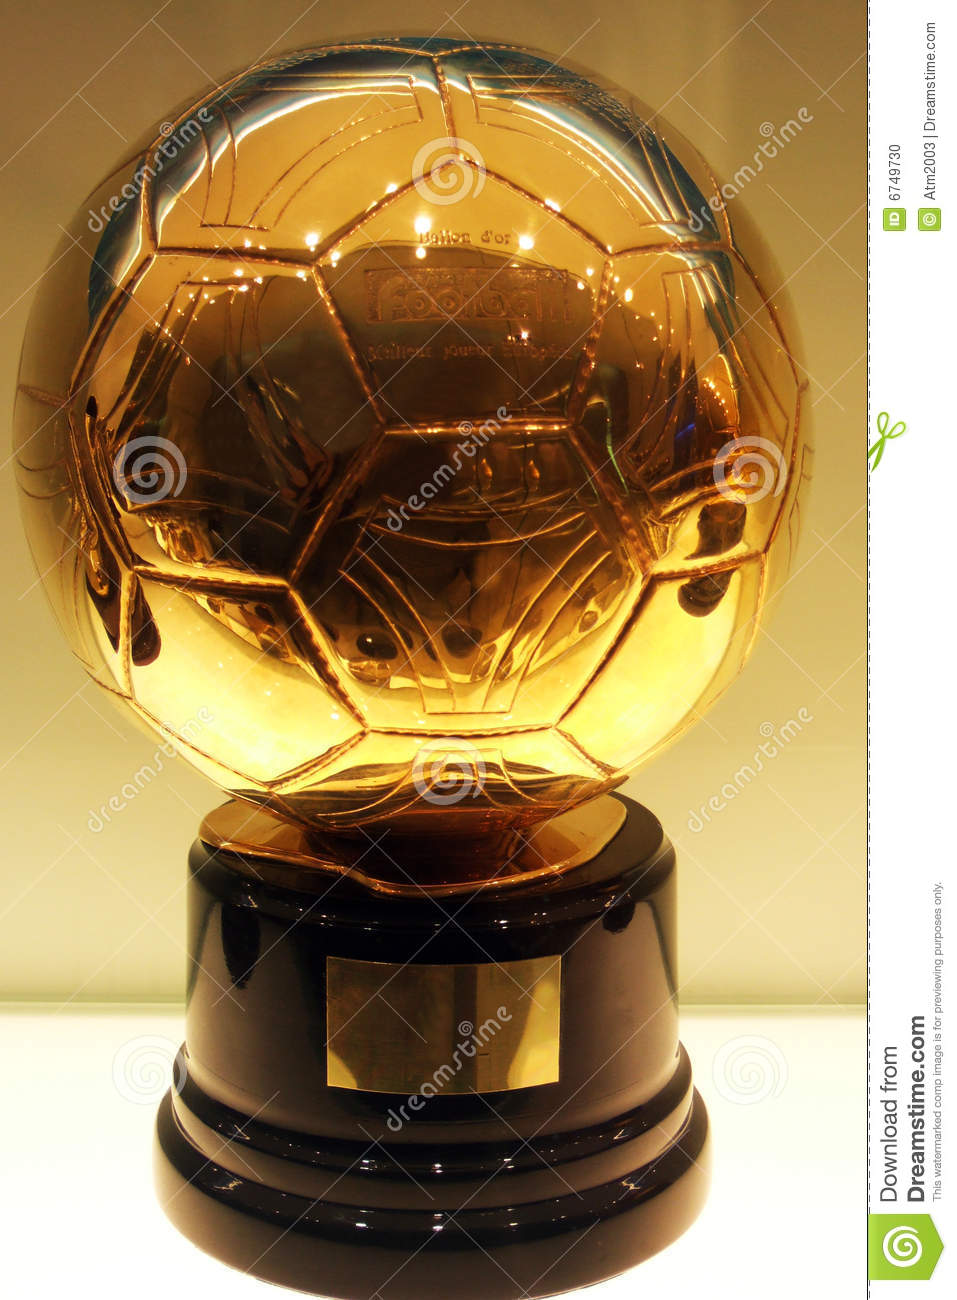 c  ronaldo golden football editorial image